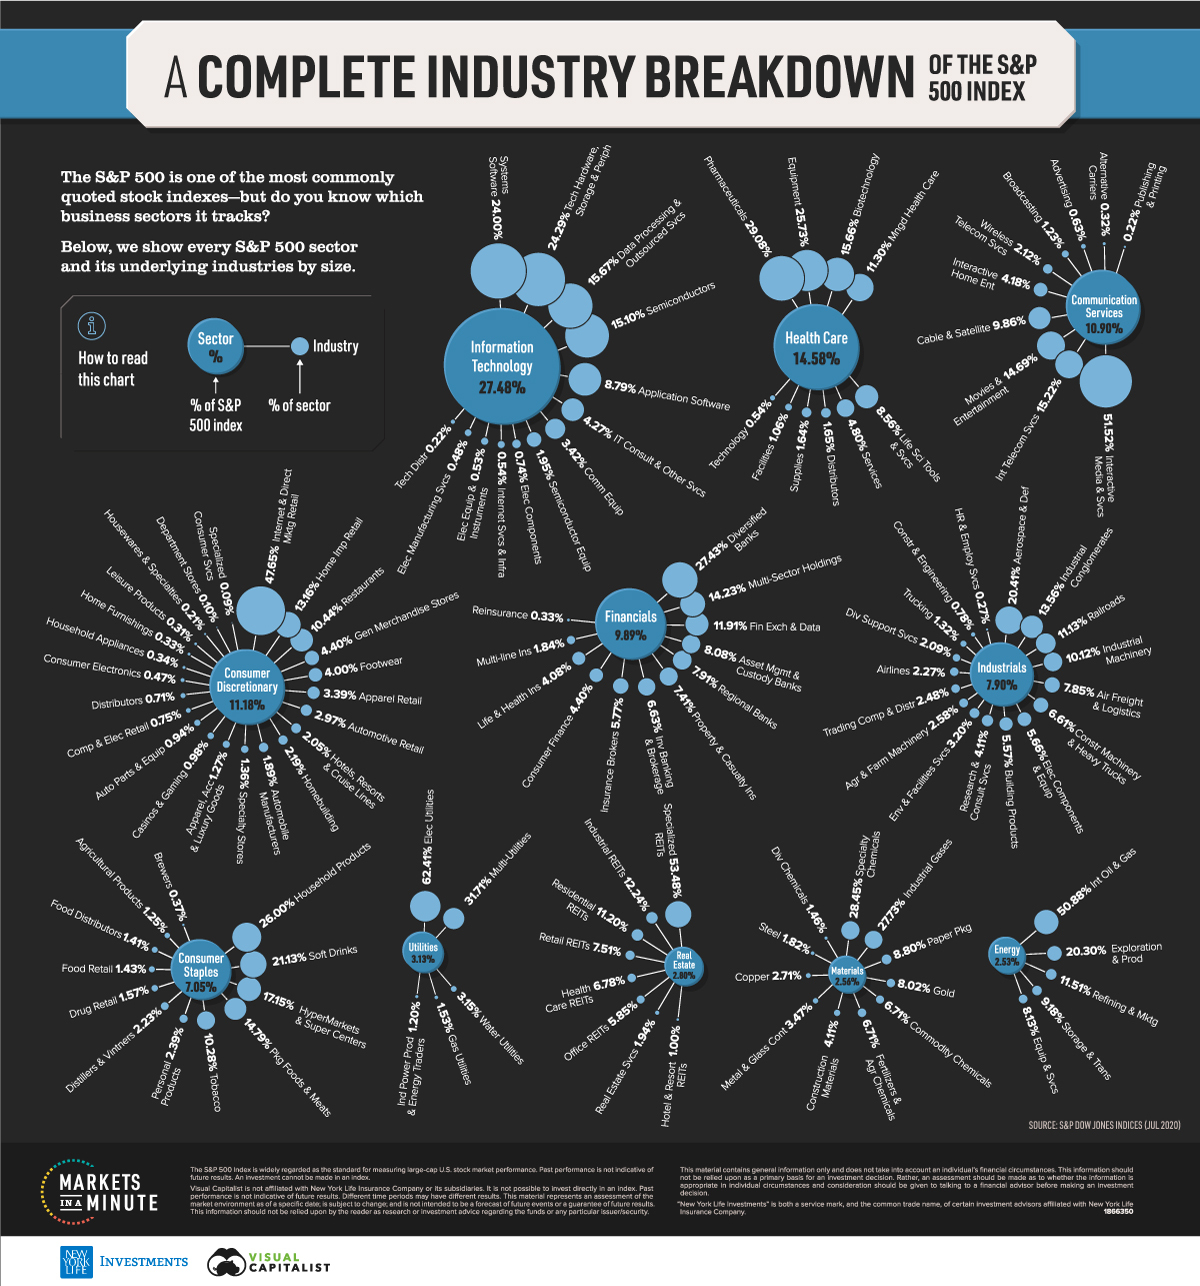 S&P 500 sectors and industries